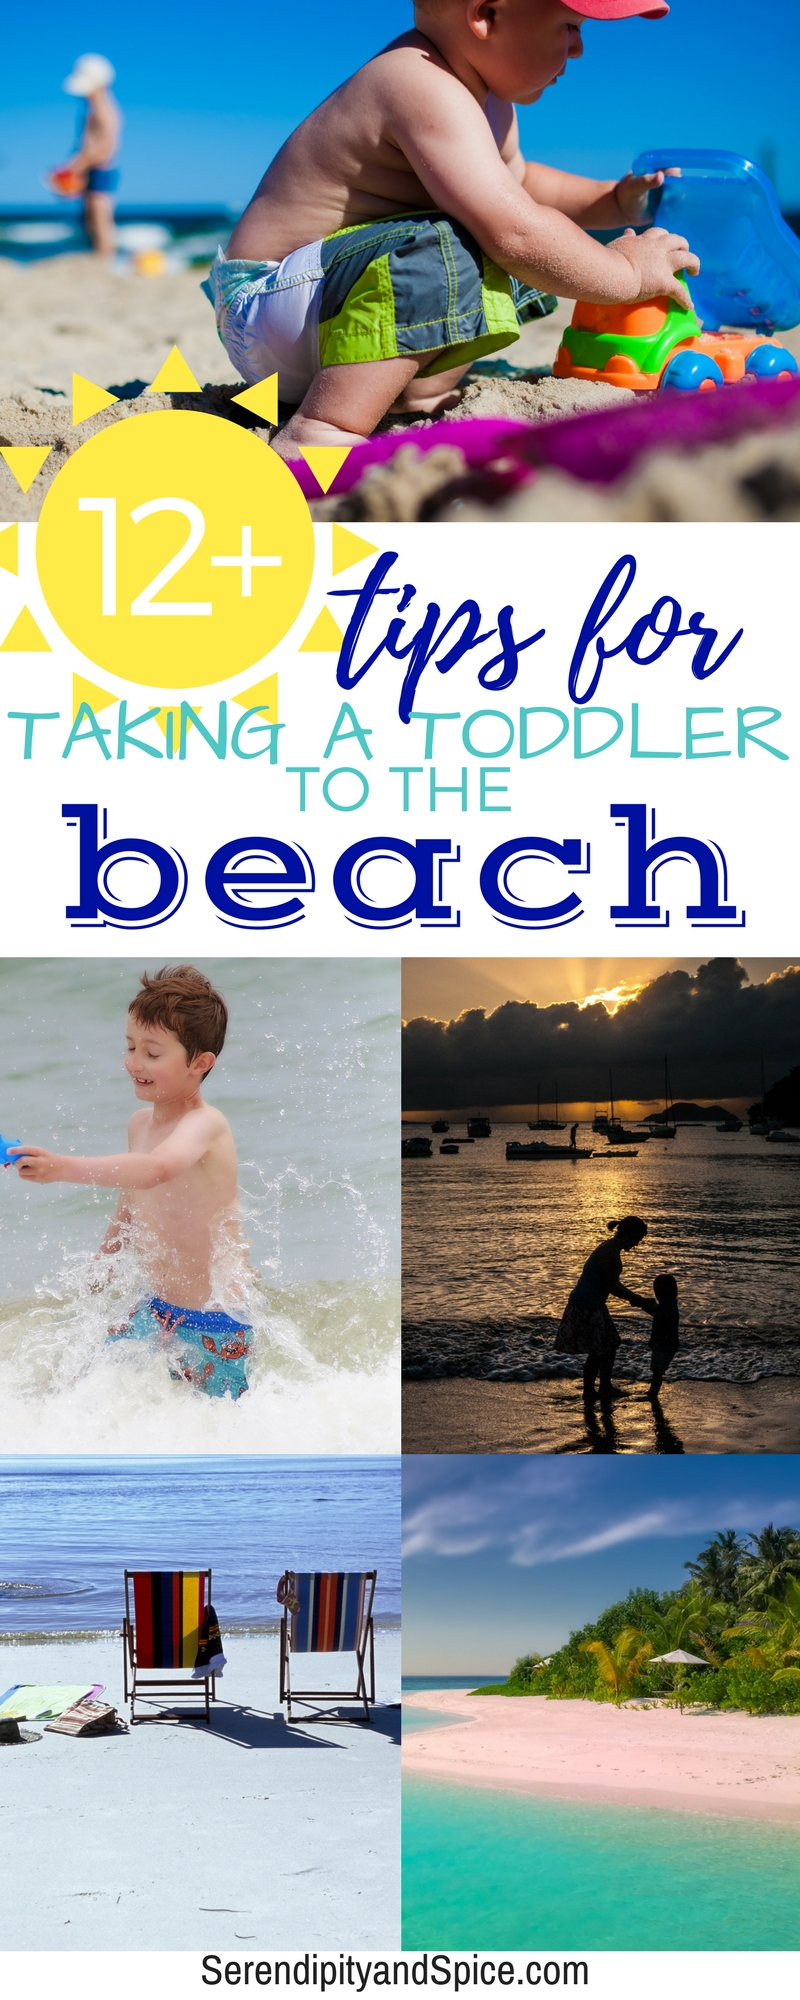 Be prepared for your beach vacation this year with these tips for taking babies, toddlers, and kids to the beach.  Have a relaxing family vacation by being prepared. #beach #travel #vacation #trip #travelingwithkids #toddlers #family #summer